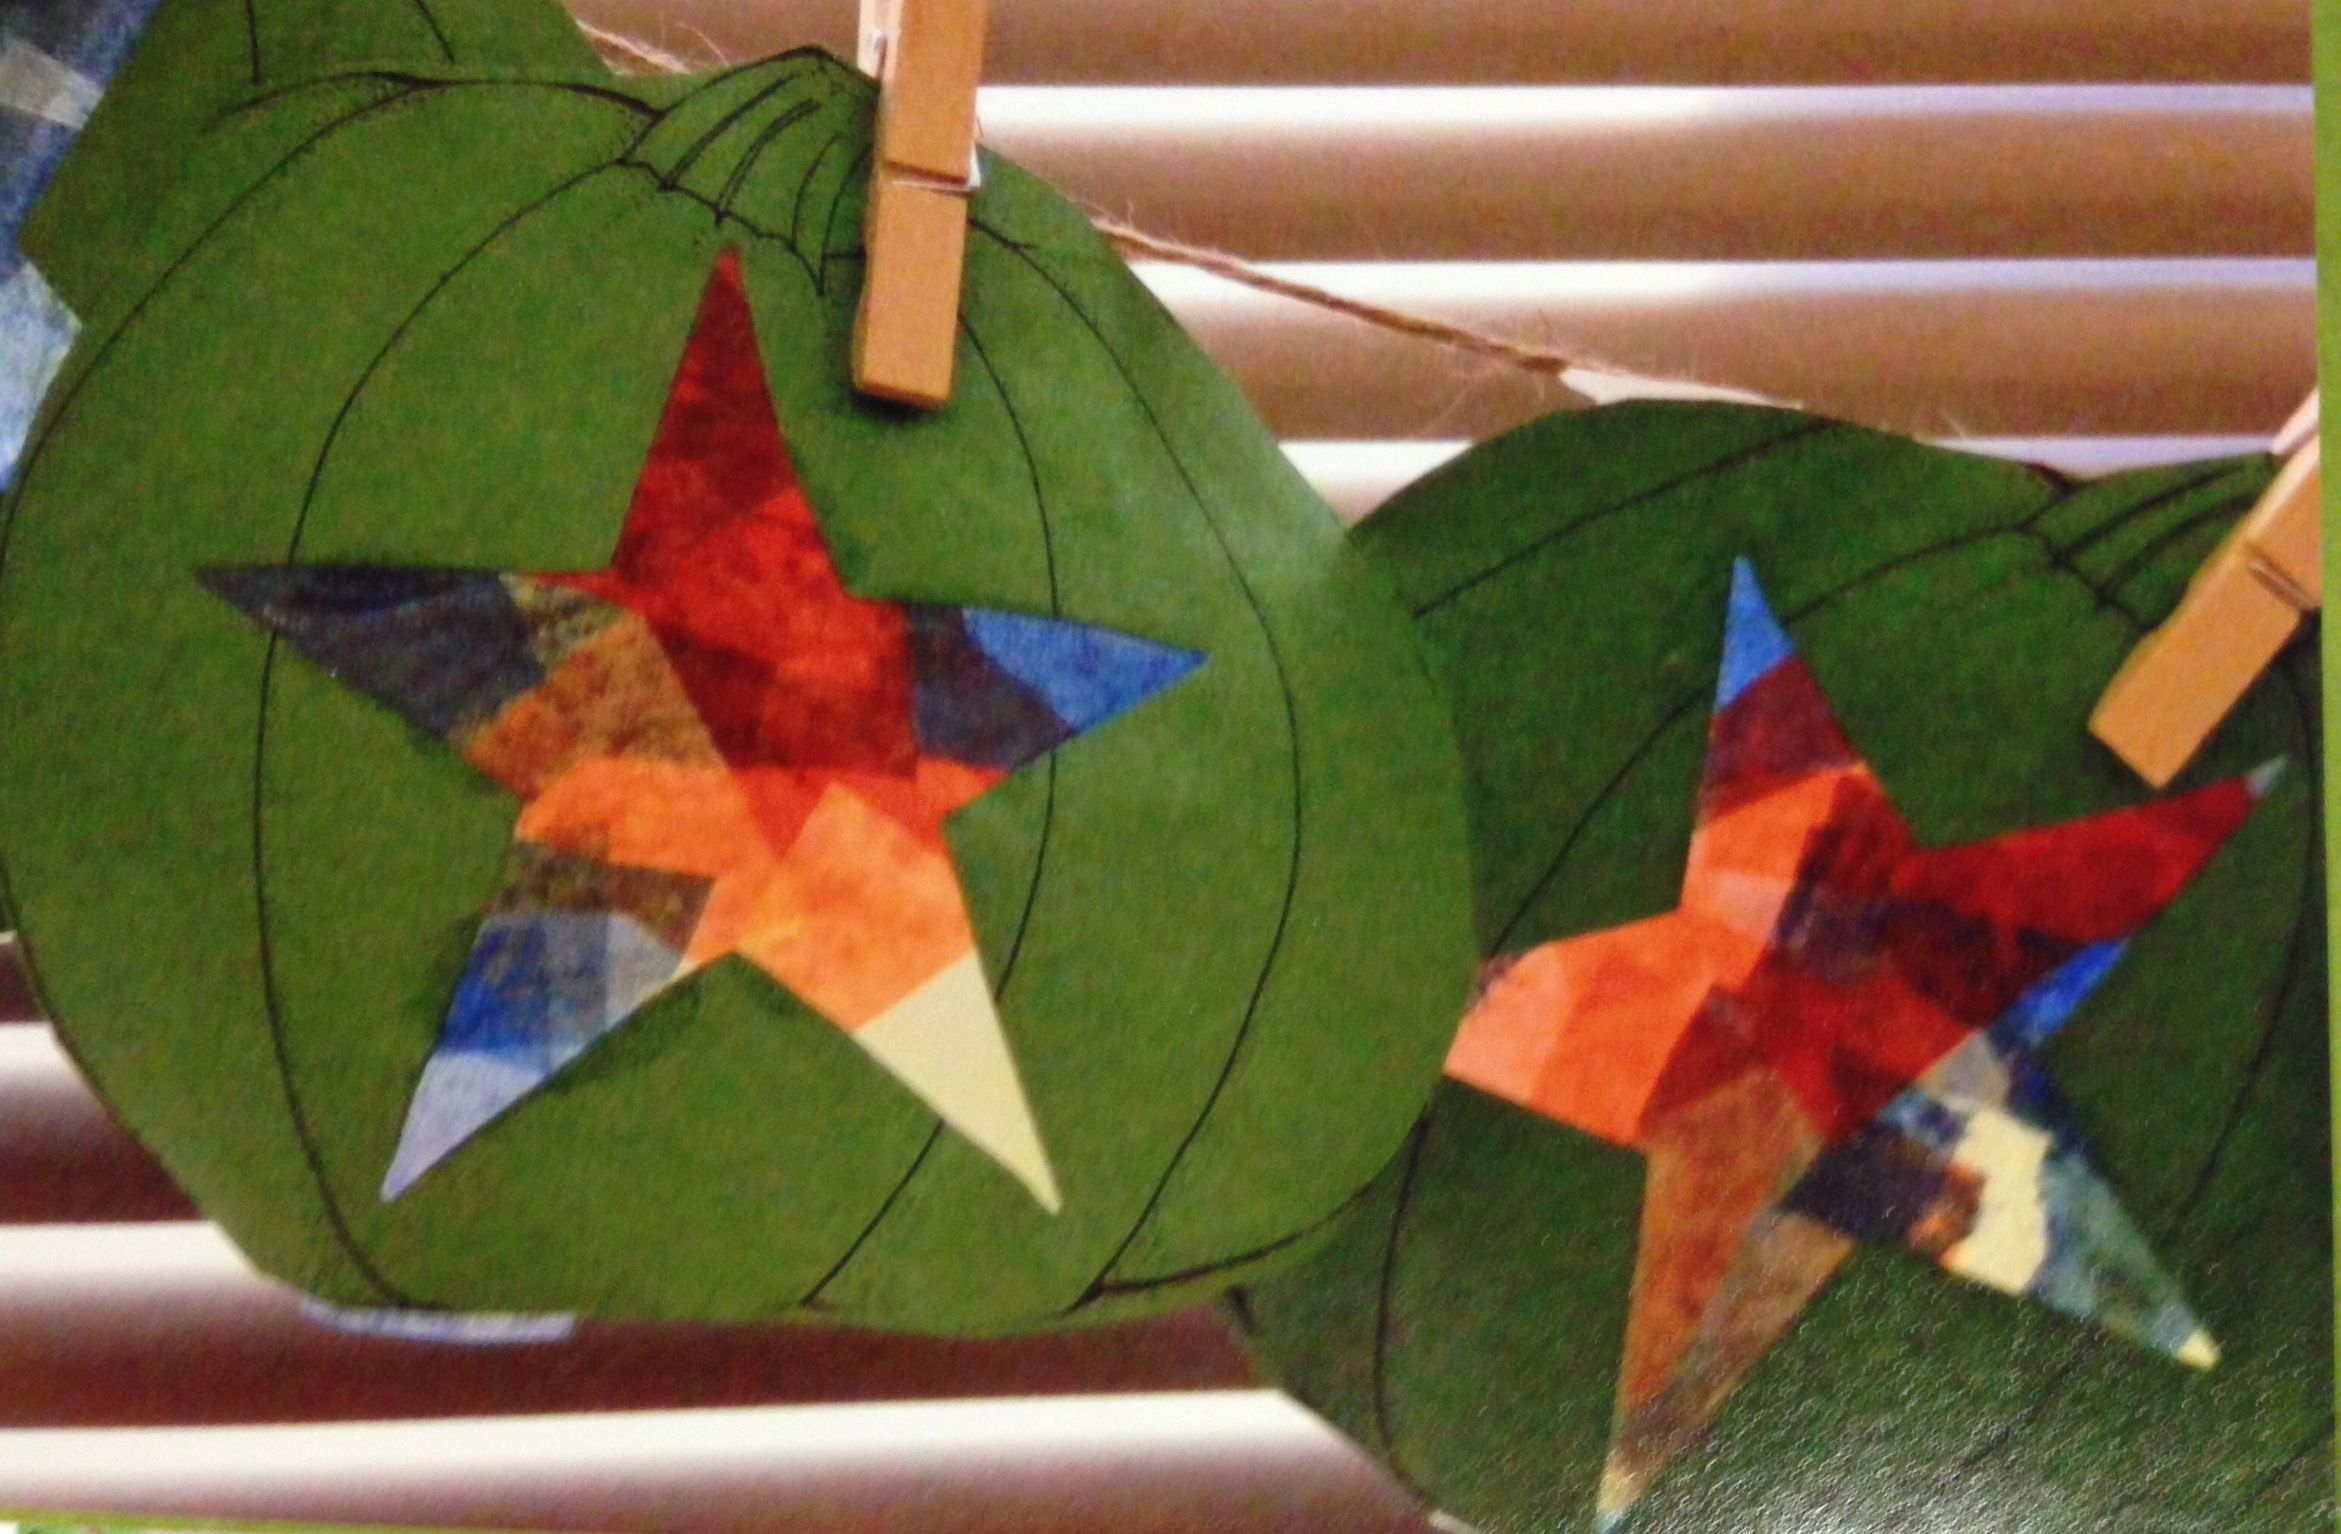 Green construction paper, star cut out, and colored tissue paper glued to the back. Put it in a window and let your light shine.